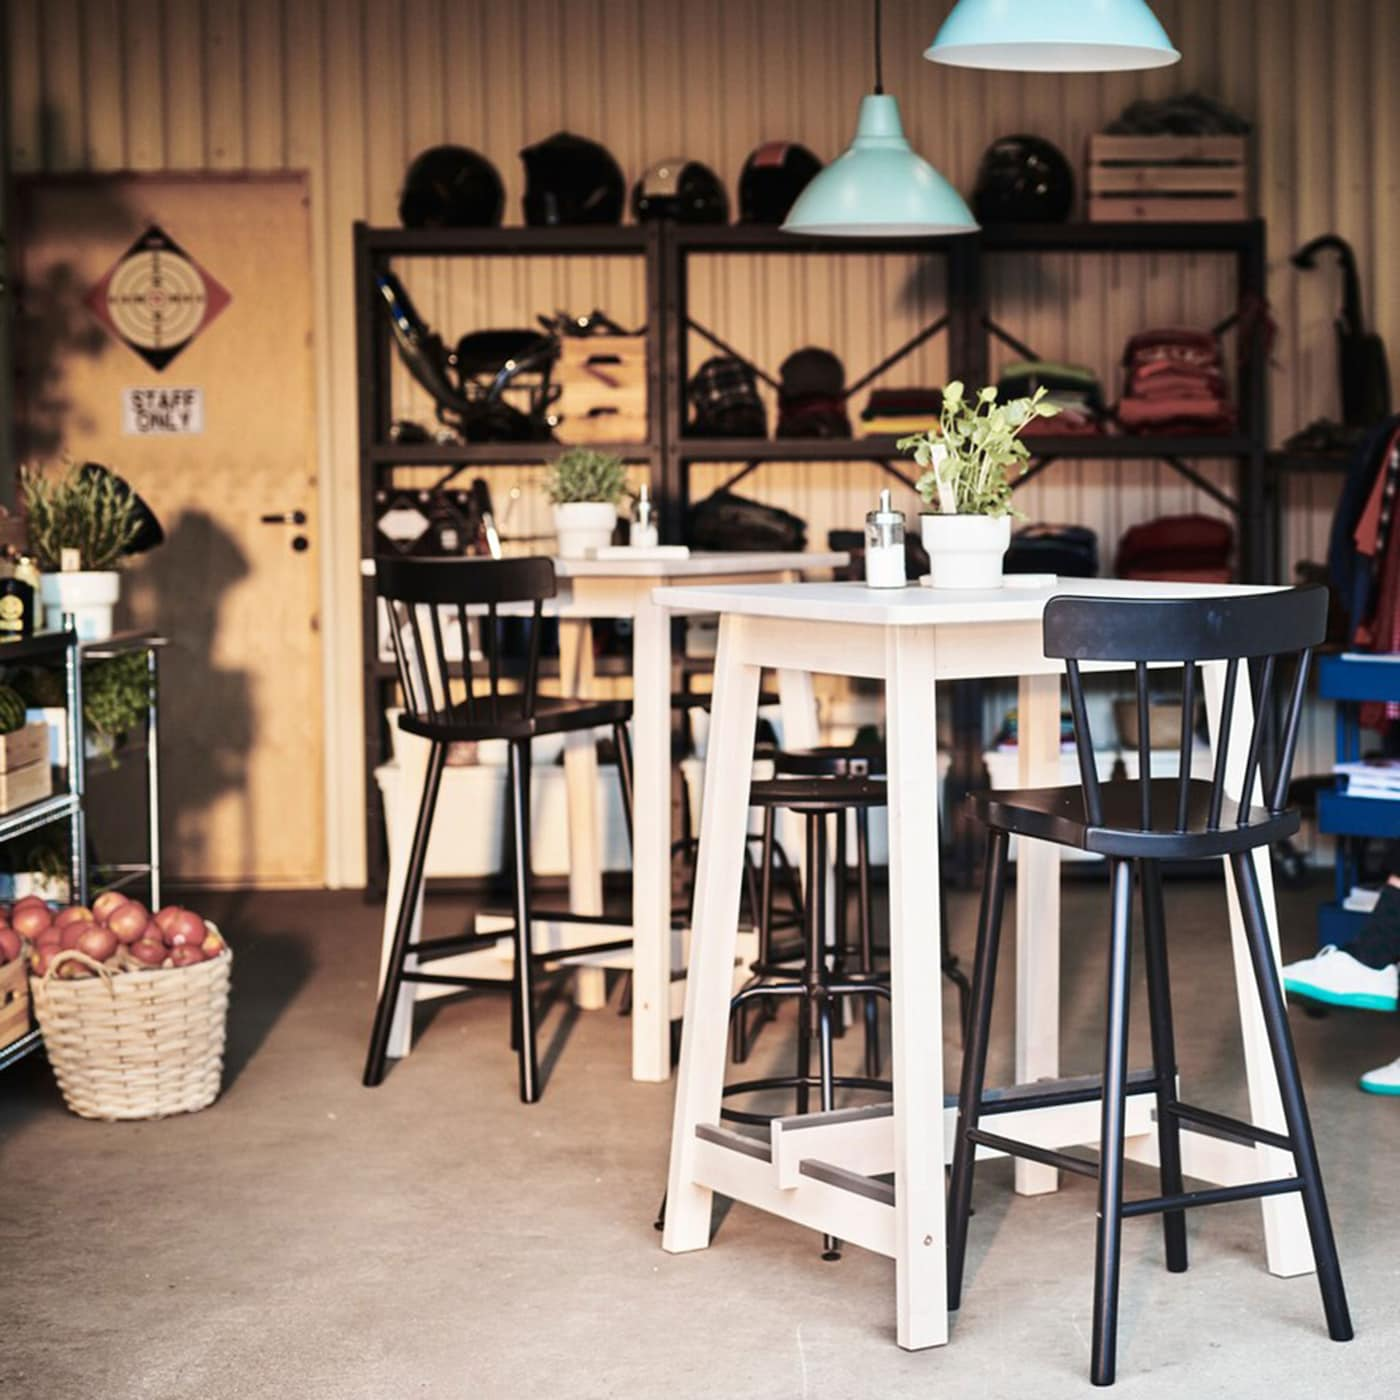 IKEA NORRÅKER light wood bar tables with high black bar chairs in a small farmhouse styled cafe setting.